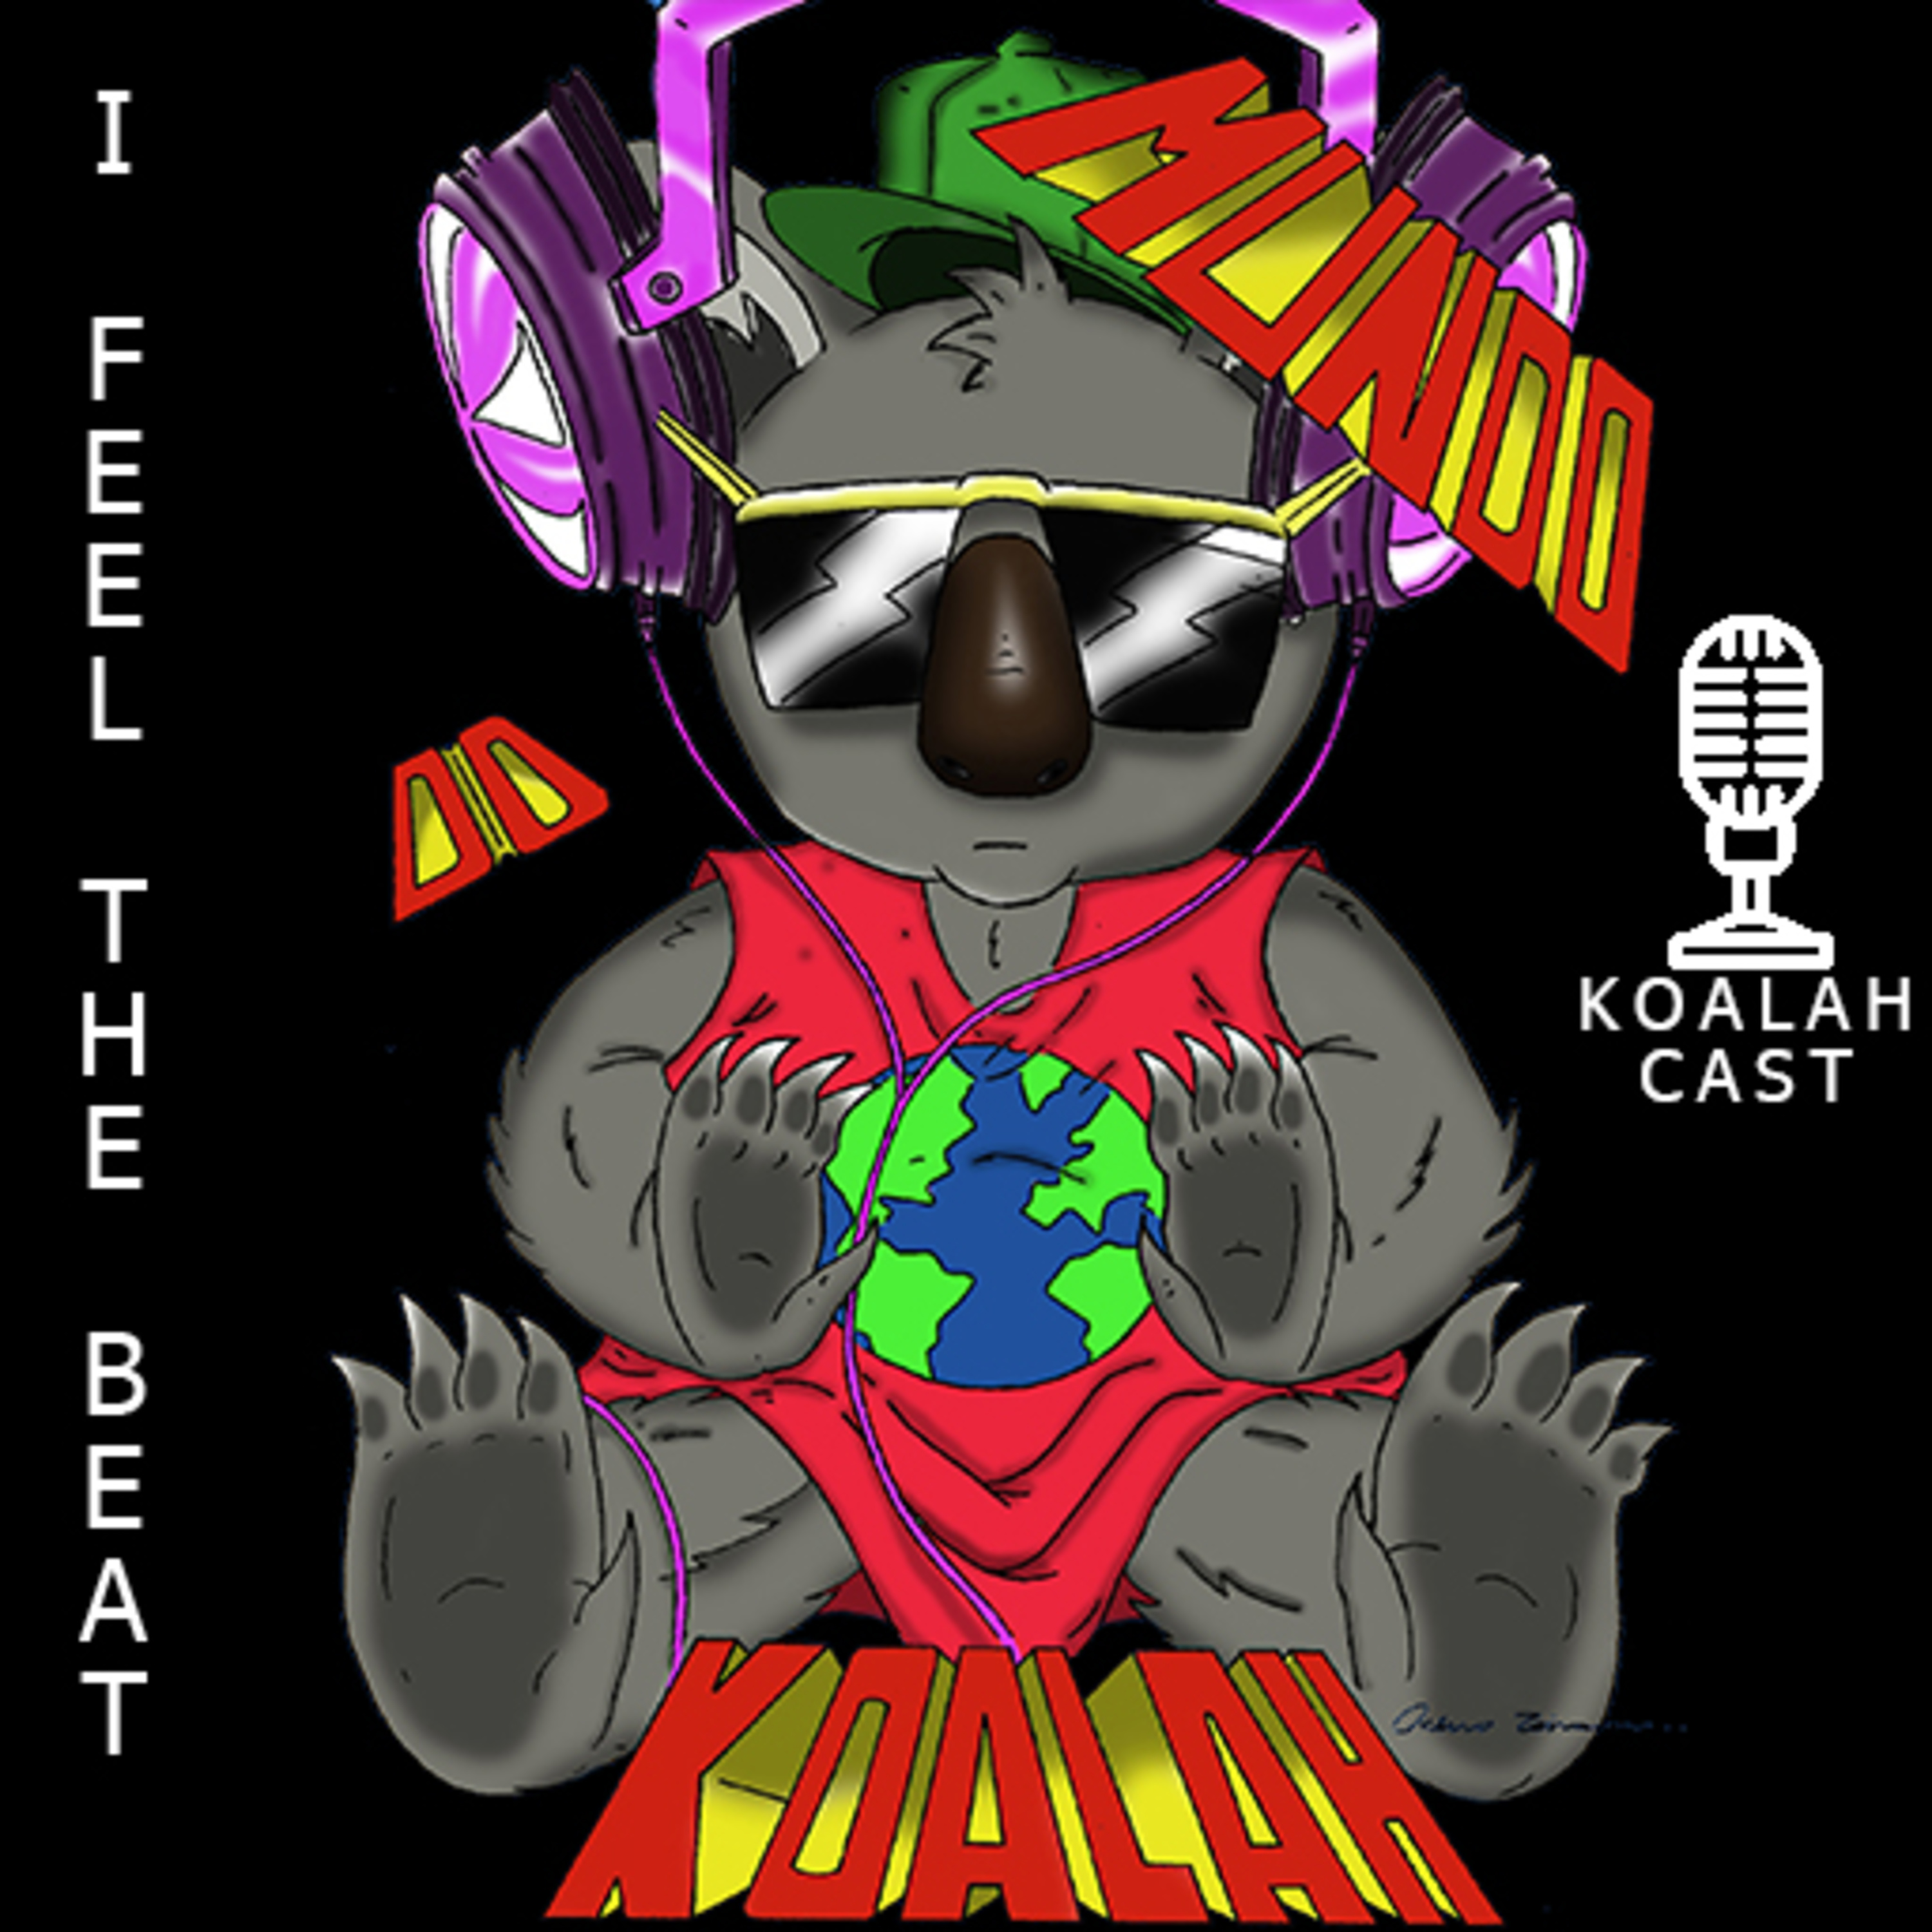 Koalah Cast - Feel the beat